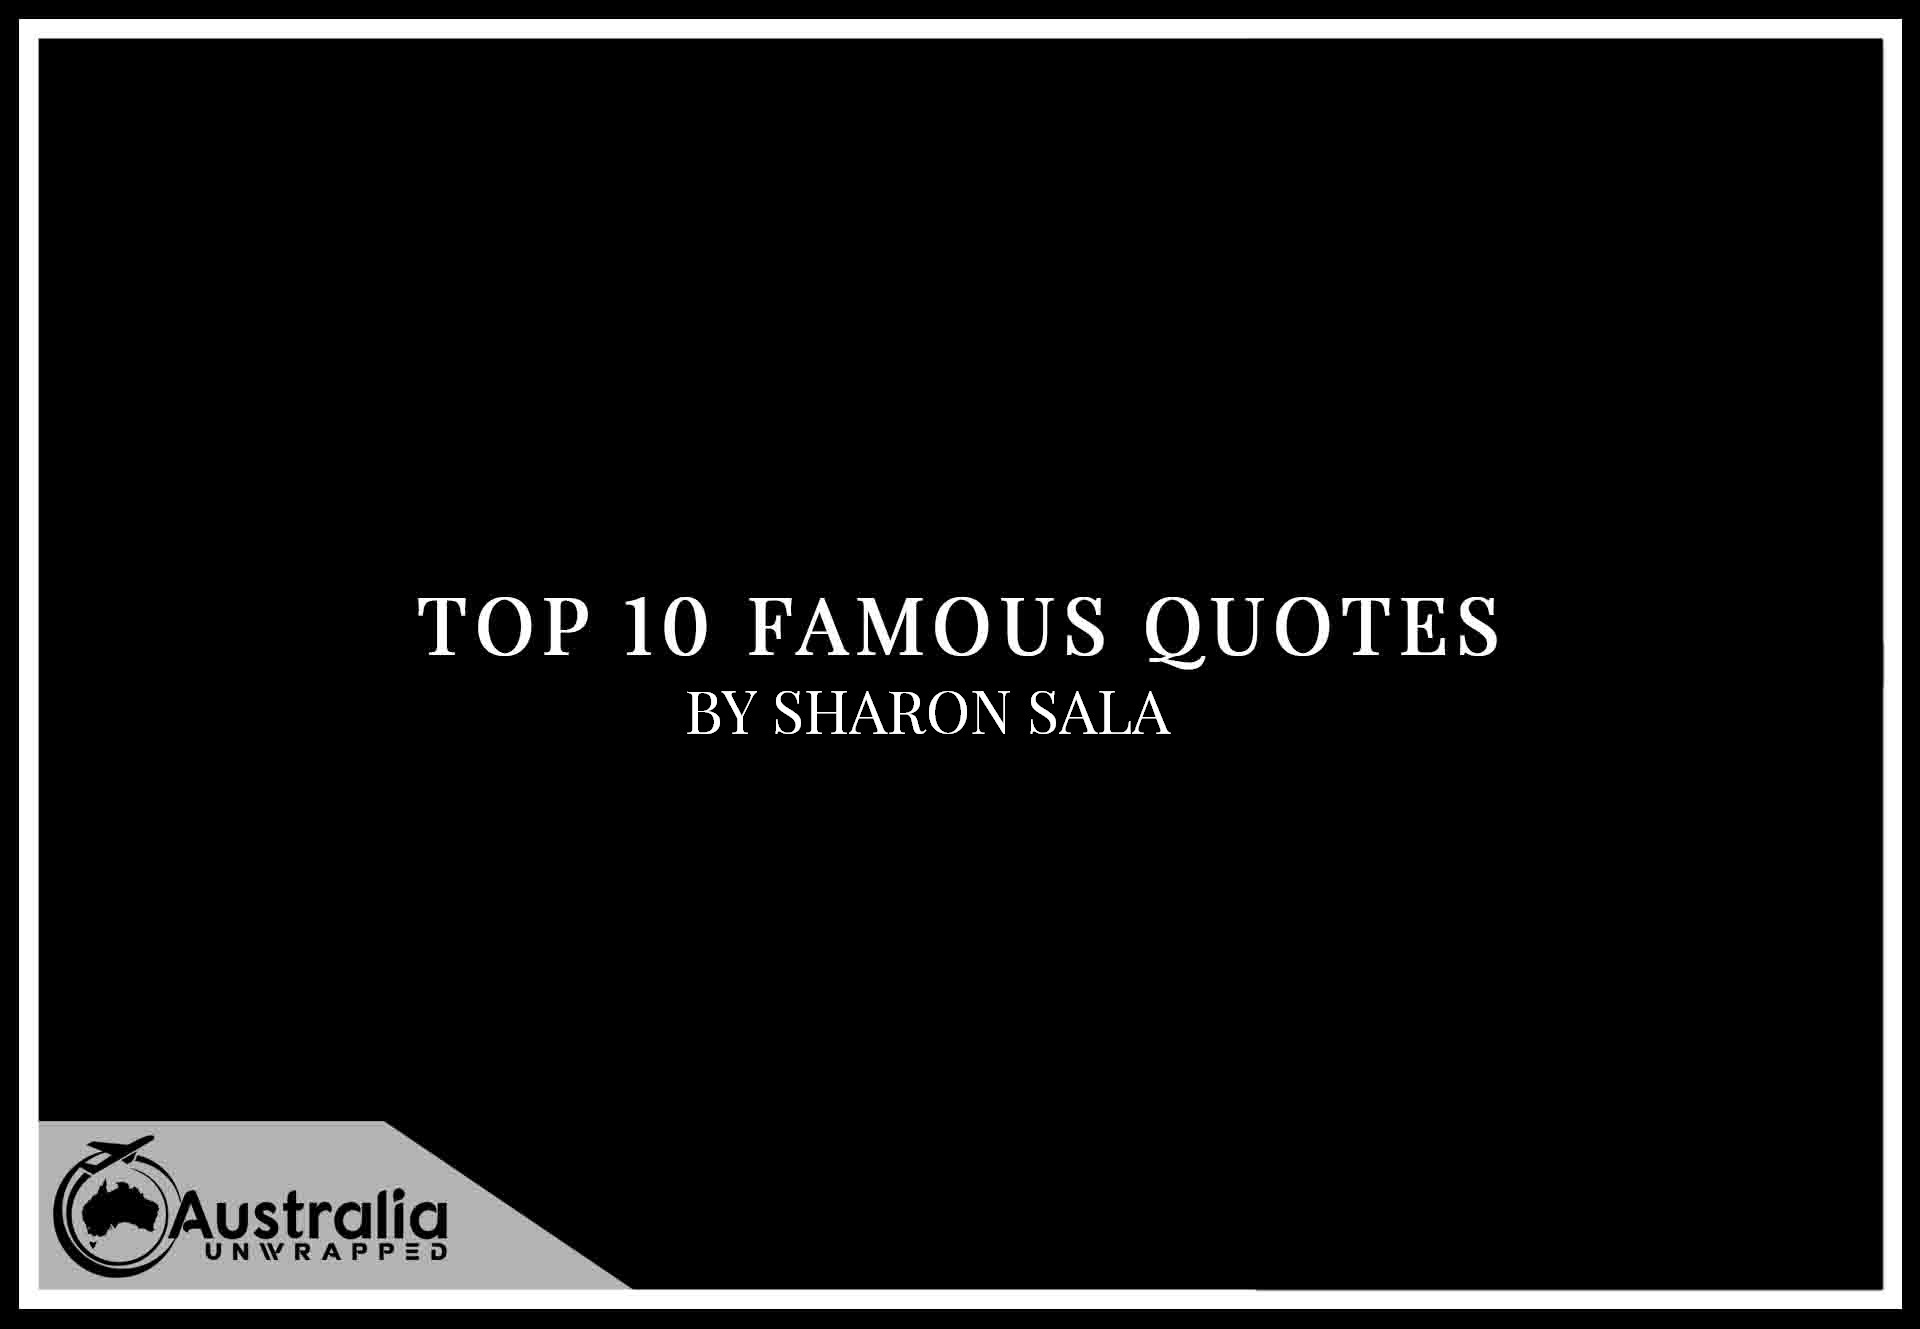 Top 10 Famous Quotes by Author Sharon Sala